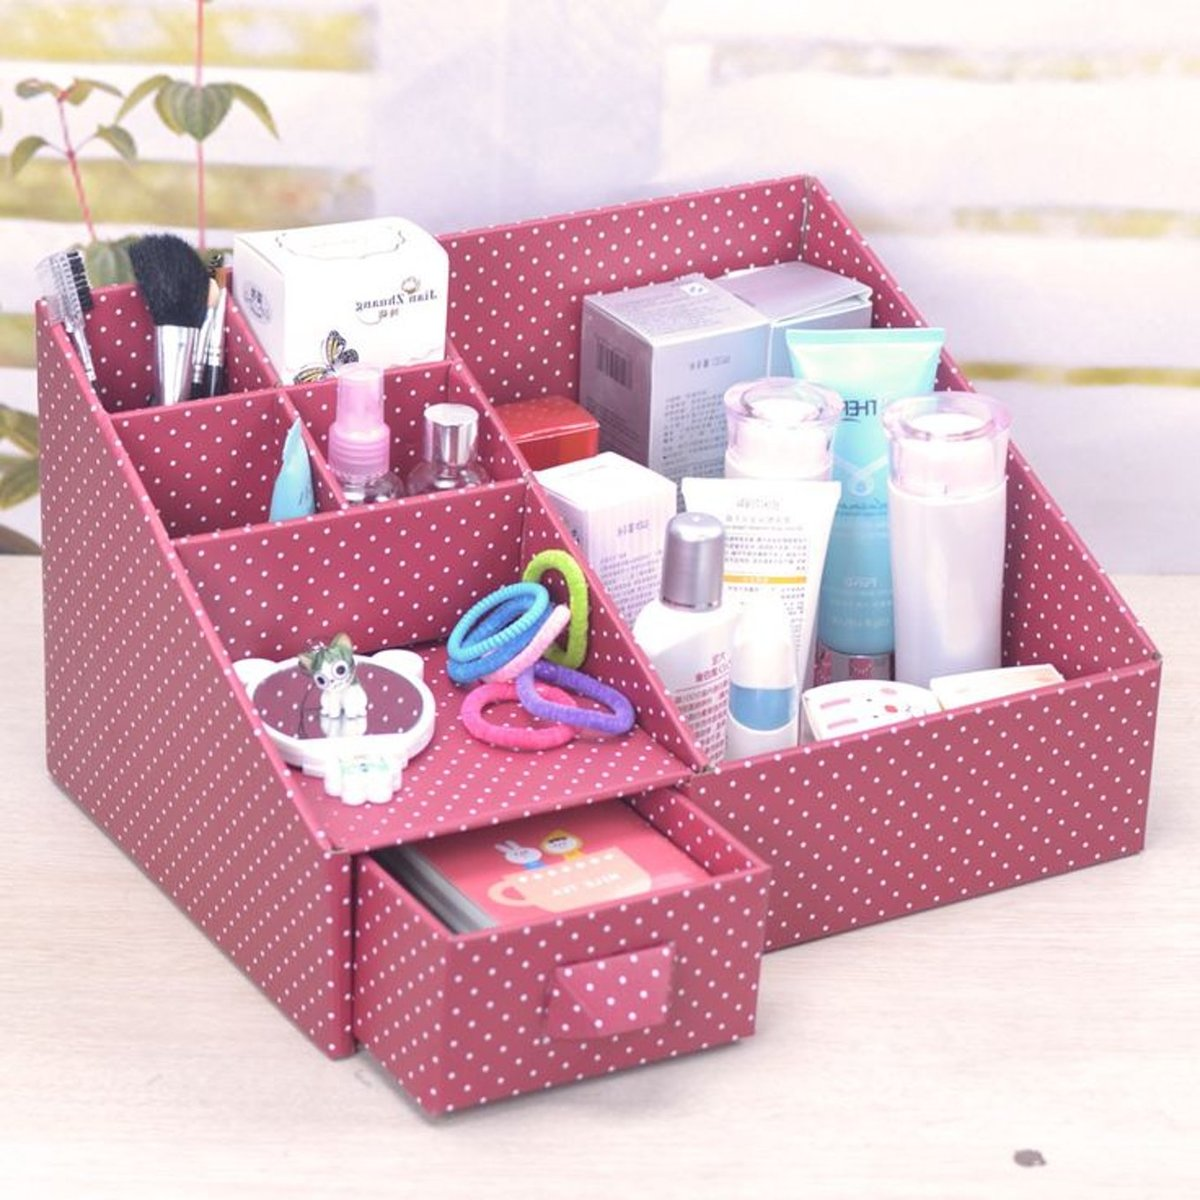 Diy Organizer Box Tutorial